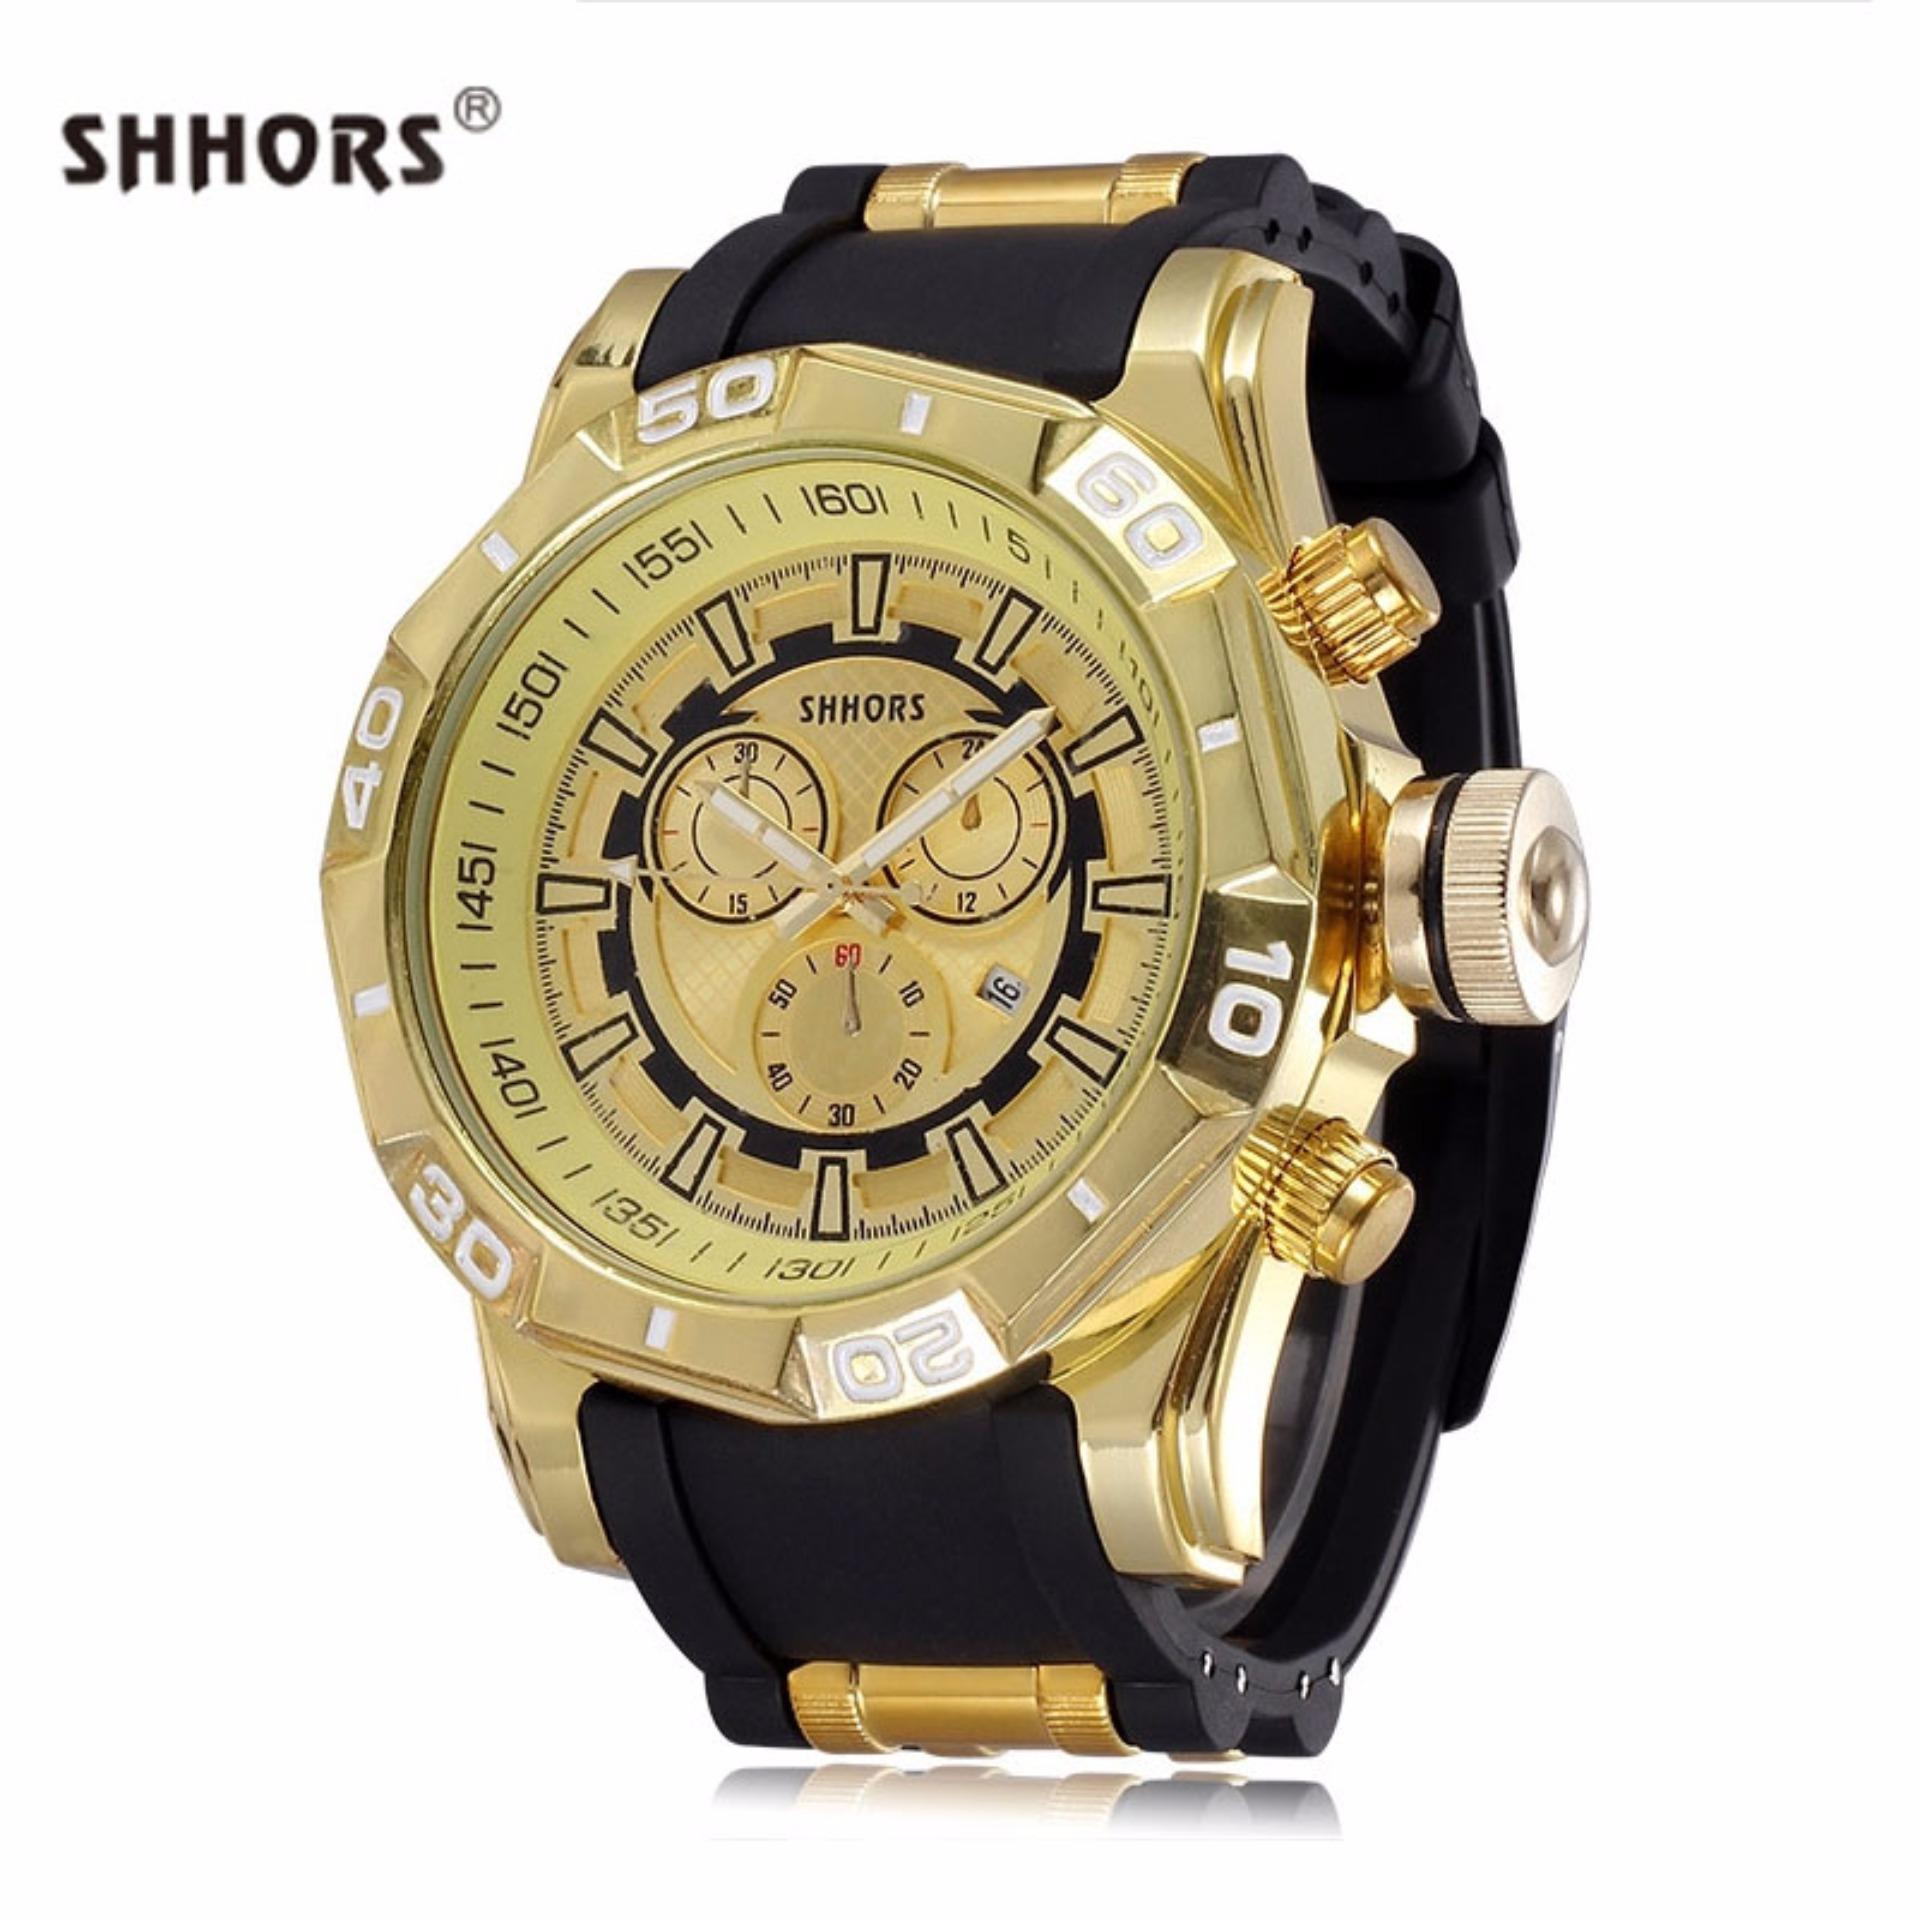 Shhors 80082 Men's Fashion PU Strap Sports Watch (Black/Gold) product preview, discount at cheapest price